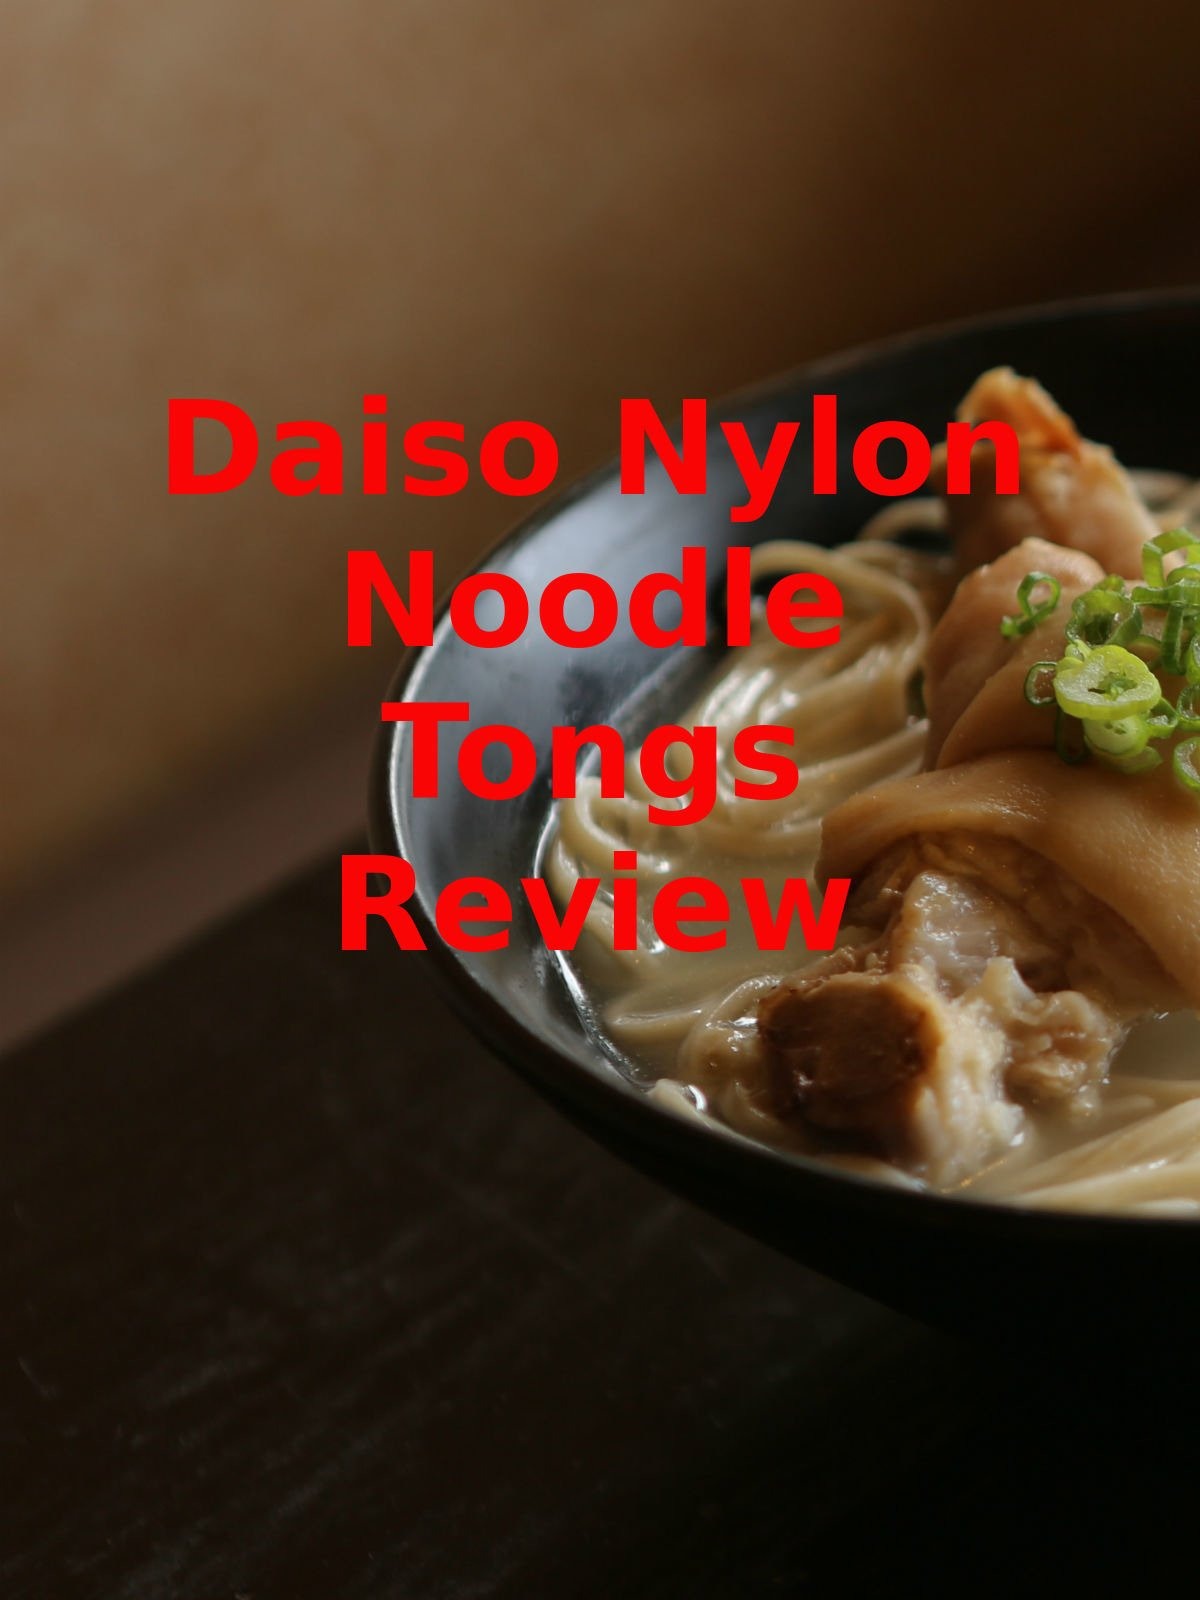 Review: Daiso Nylon Noodle Tongs Review